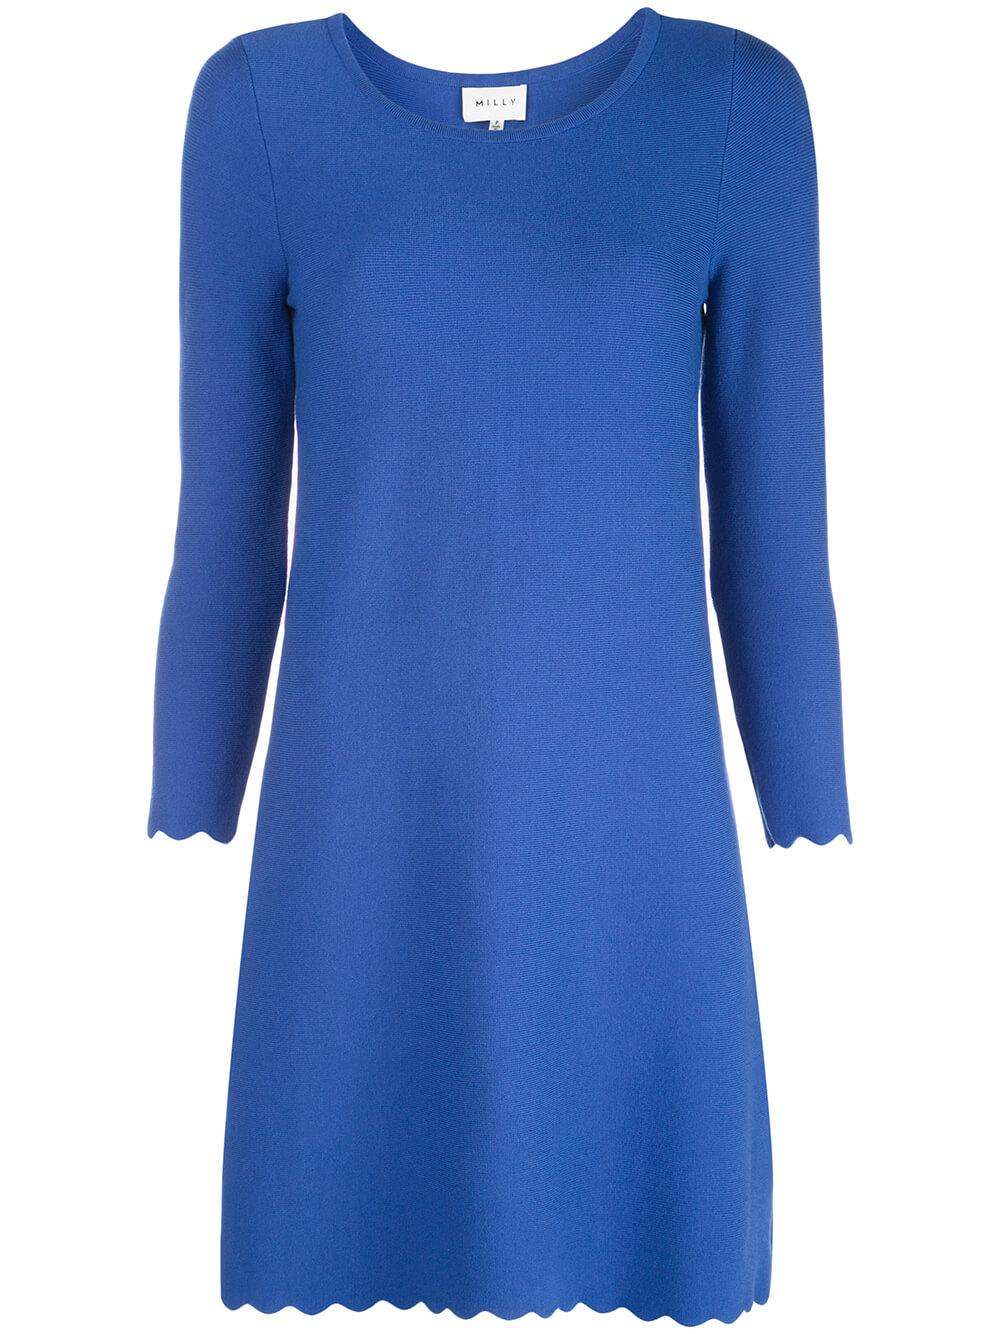 Scallop A Line 3/4 Sleeve Dress